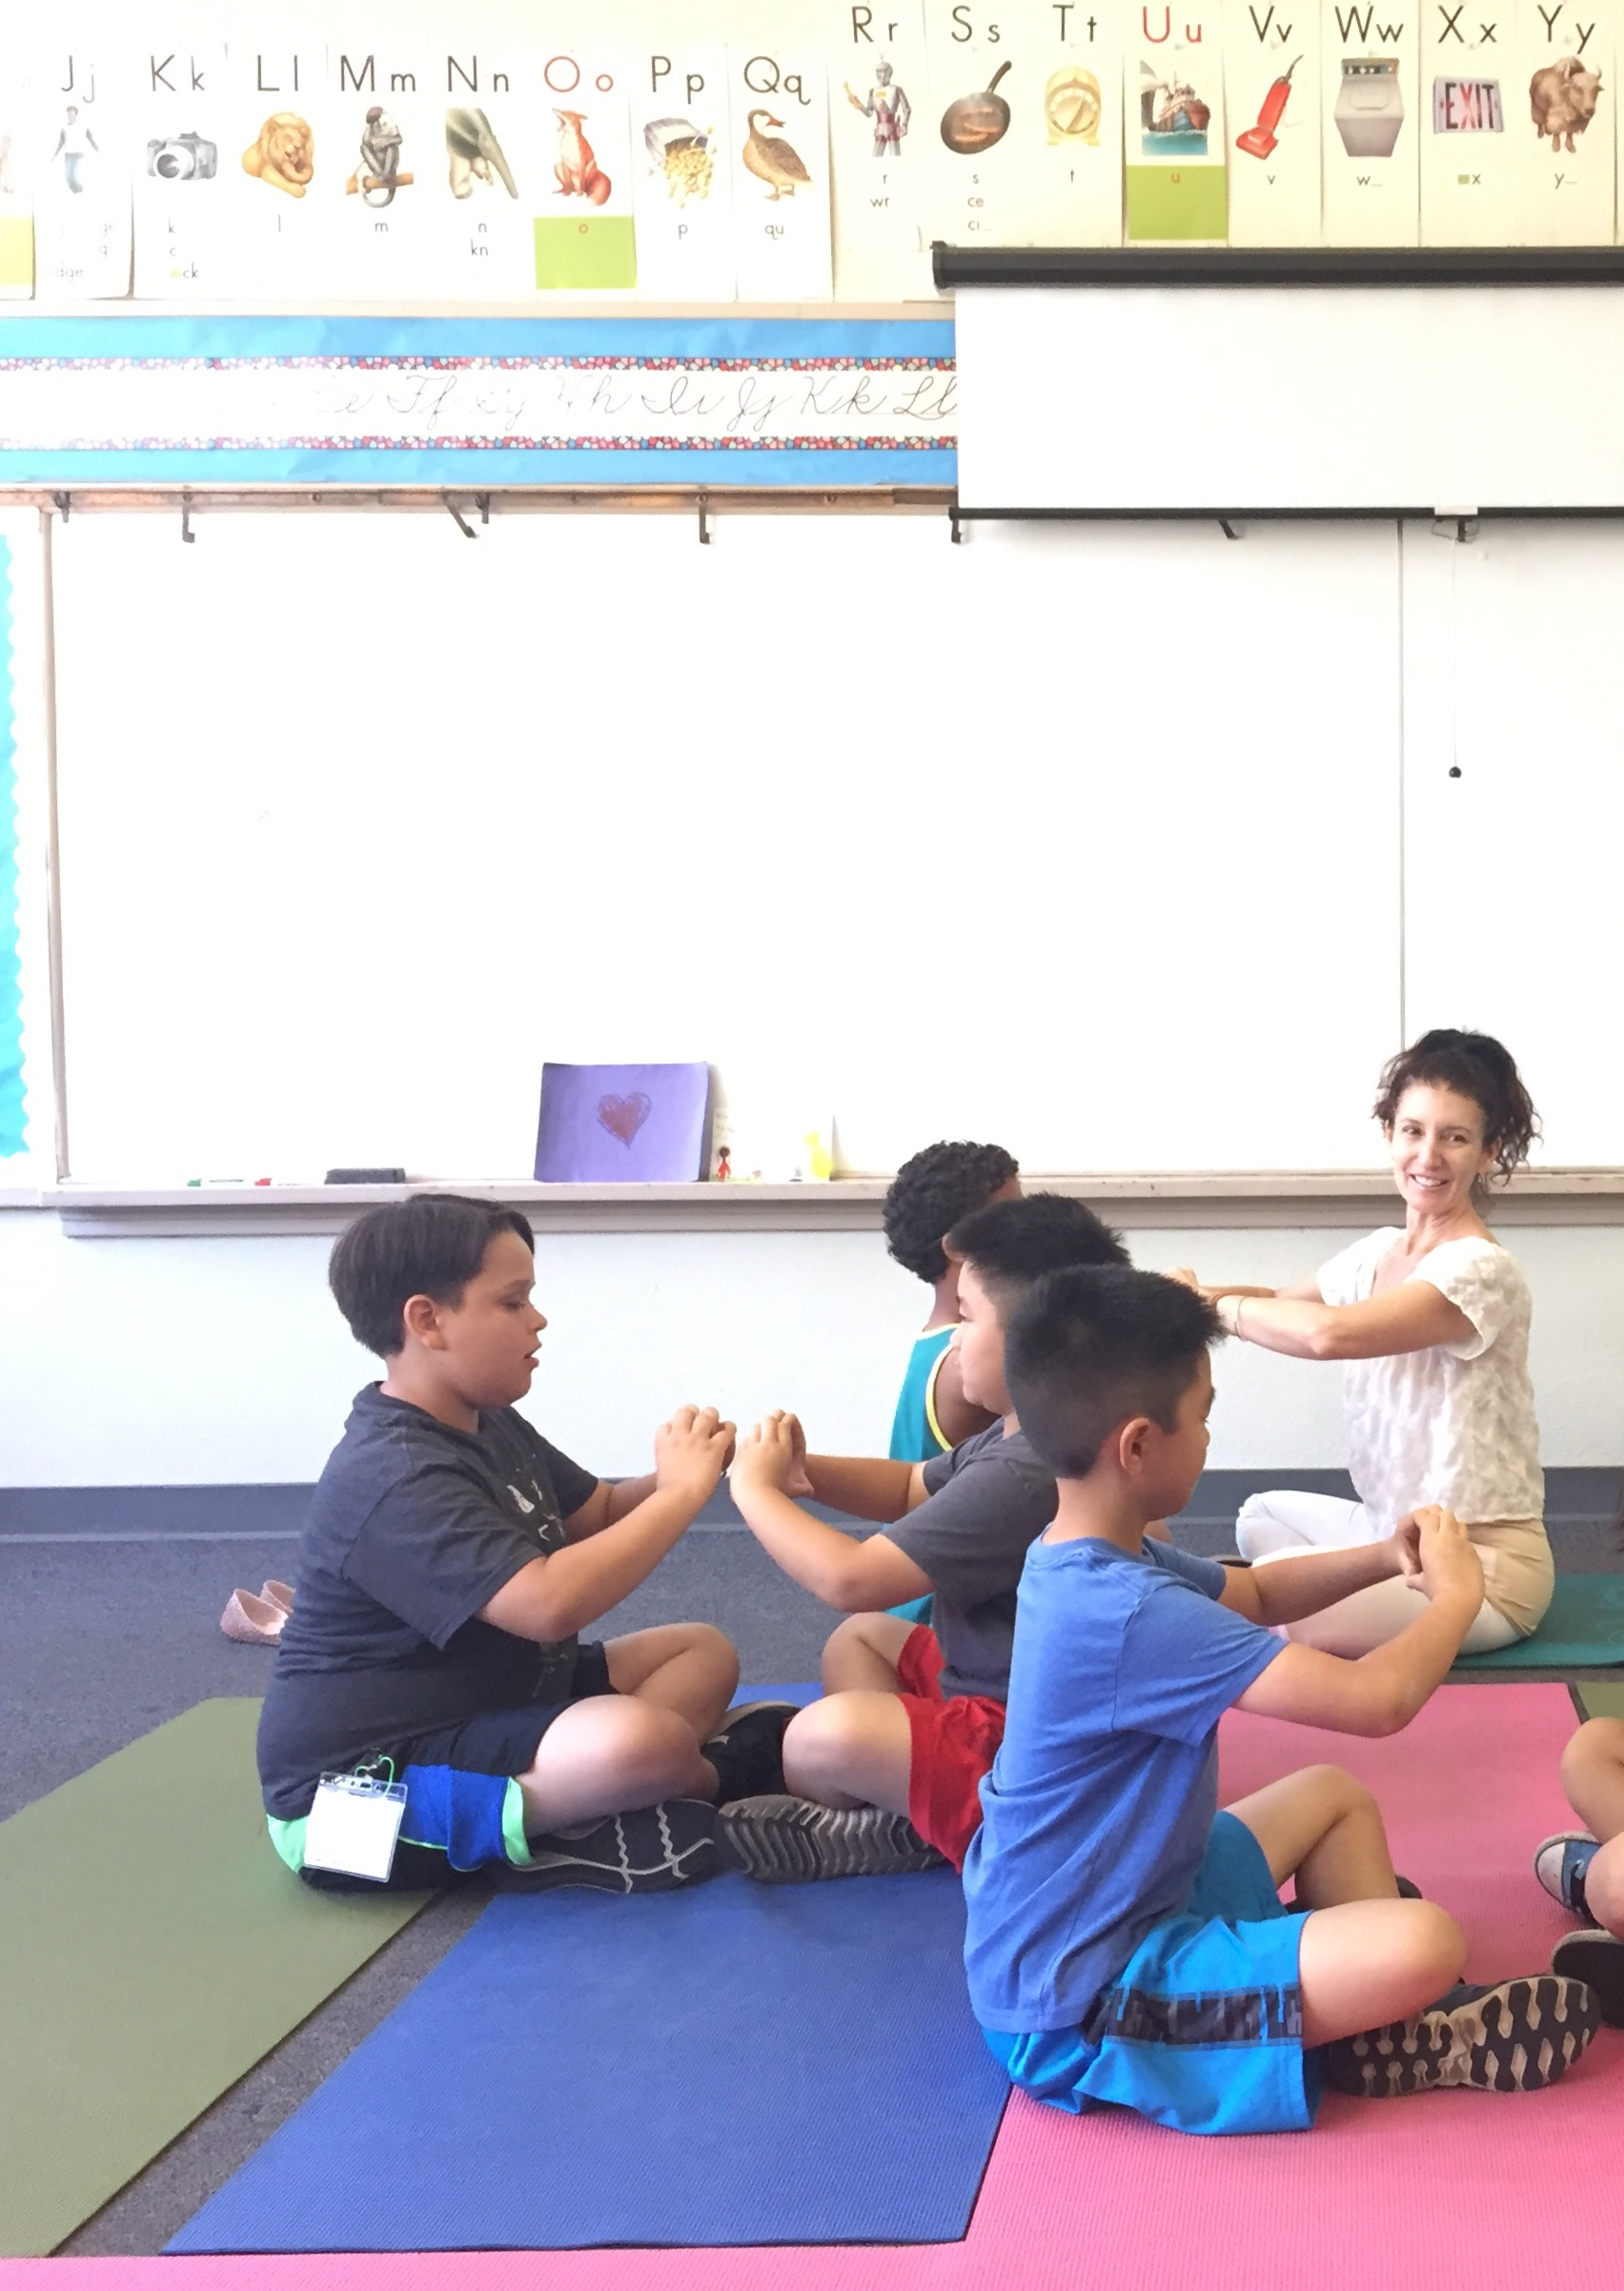 SCHOOL Kids Yoga provides classroom management methods for public school teachers so they can teach to the heart of students and encourage cooperation, kindness and group harmony.